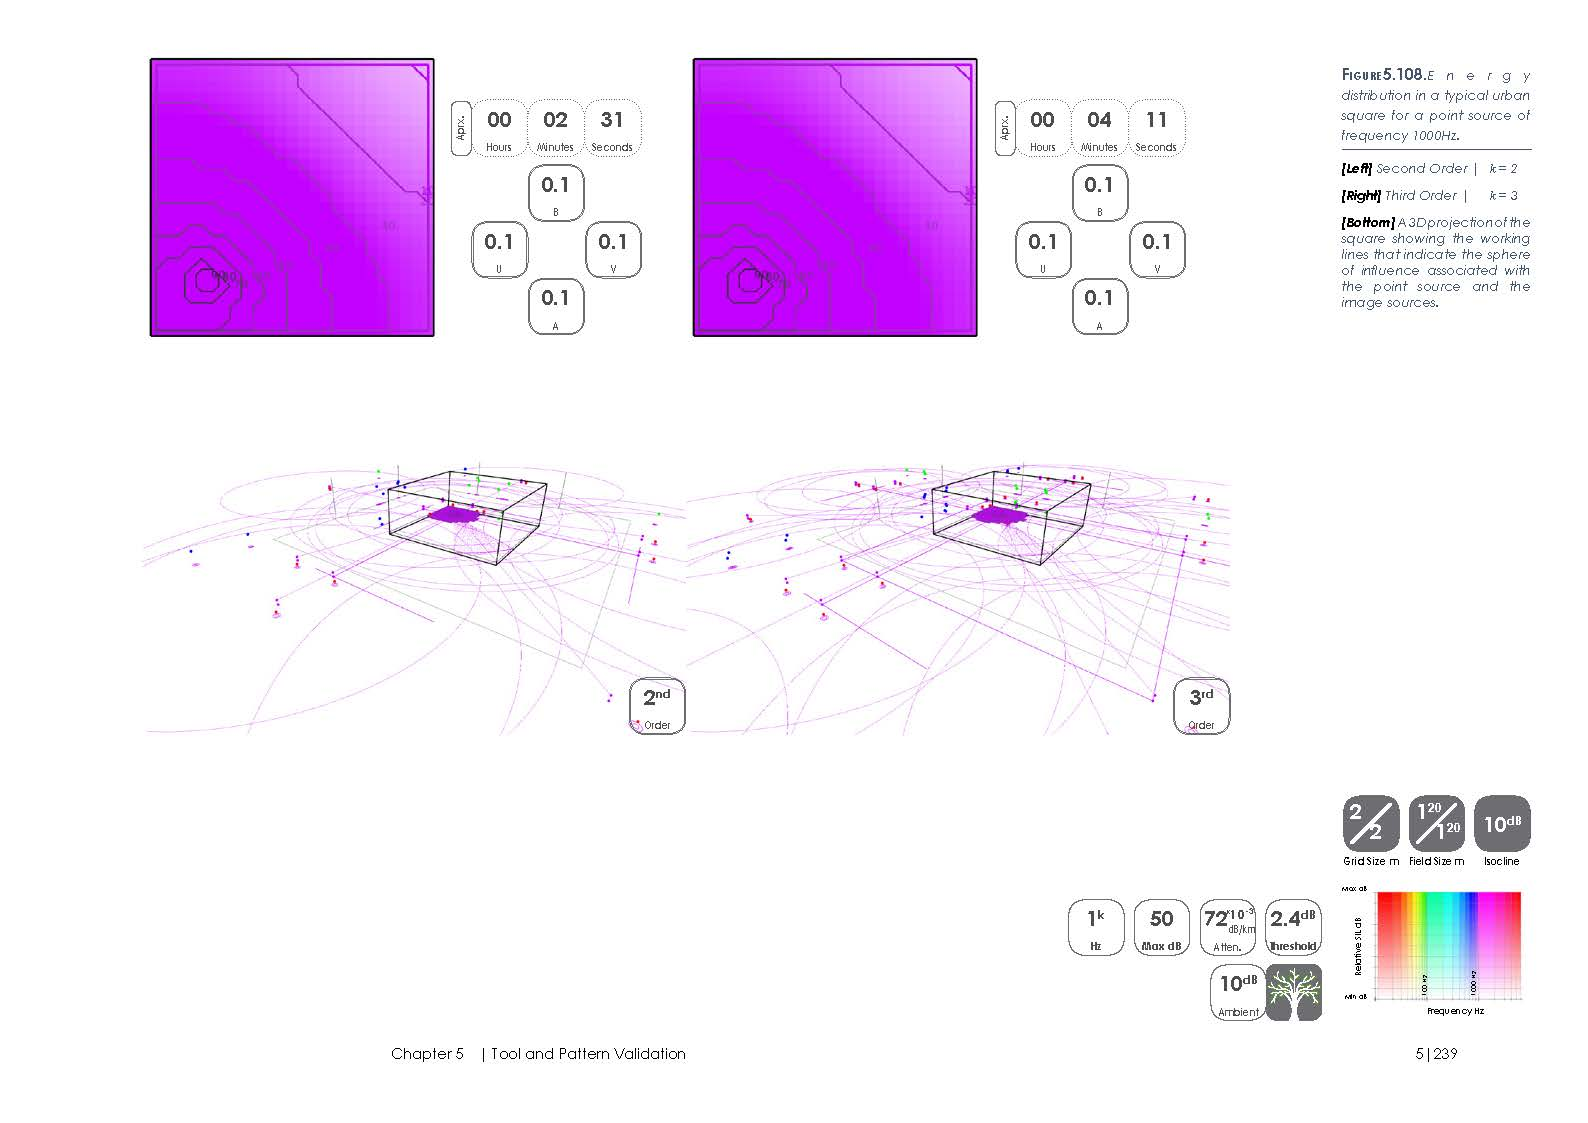 16.03.03_Thesis_01_Interactive_Page_275.jpg